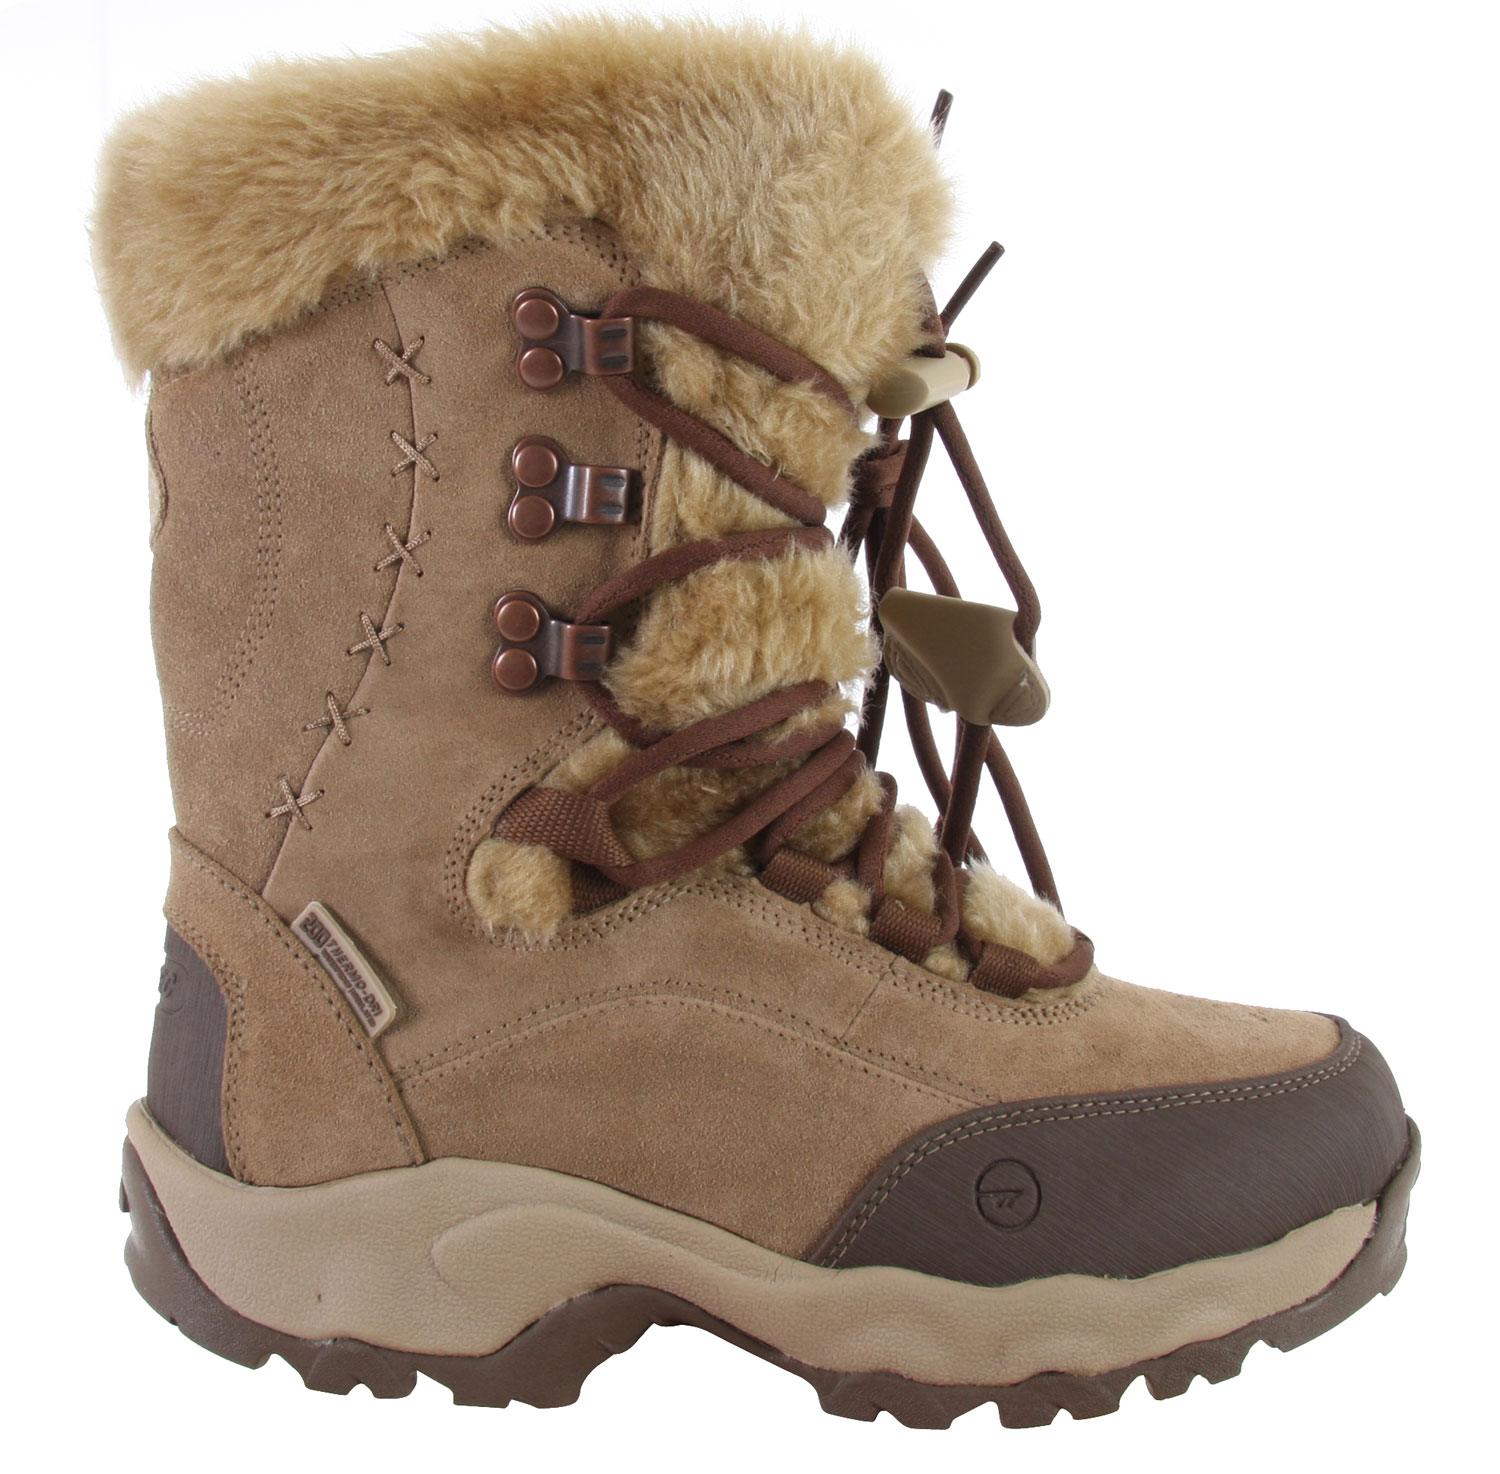 Key Features of the Hitec St Moritz 200 Casual Boots: Faux Fur Lined Collar Fleeced Lined Upper Thermo-Dri@ Waterproof And Insulation System Womens Specific Last For Superior Fit And Performance Lightweight Compression Molded Eva Midsole Durable Carbon Rubber Outsole Removable Eva Sockliner - $70.95